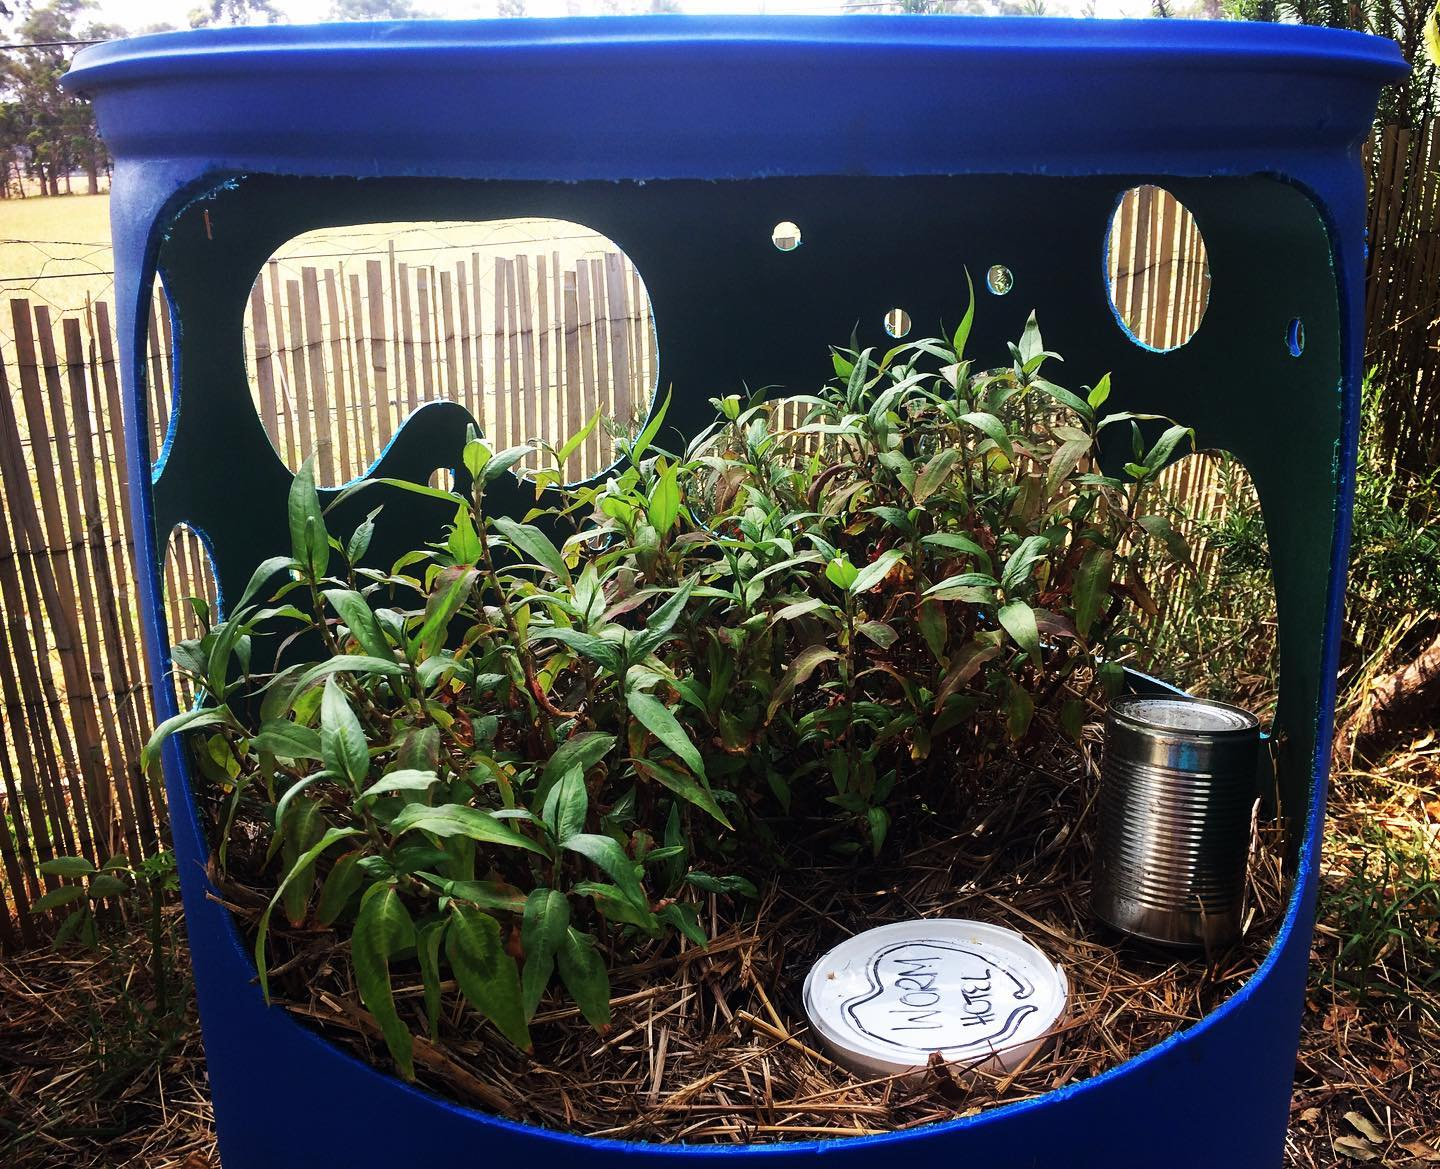 Wicking Beds and Waterwise Gardening Workshop